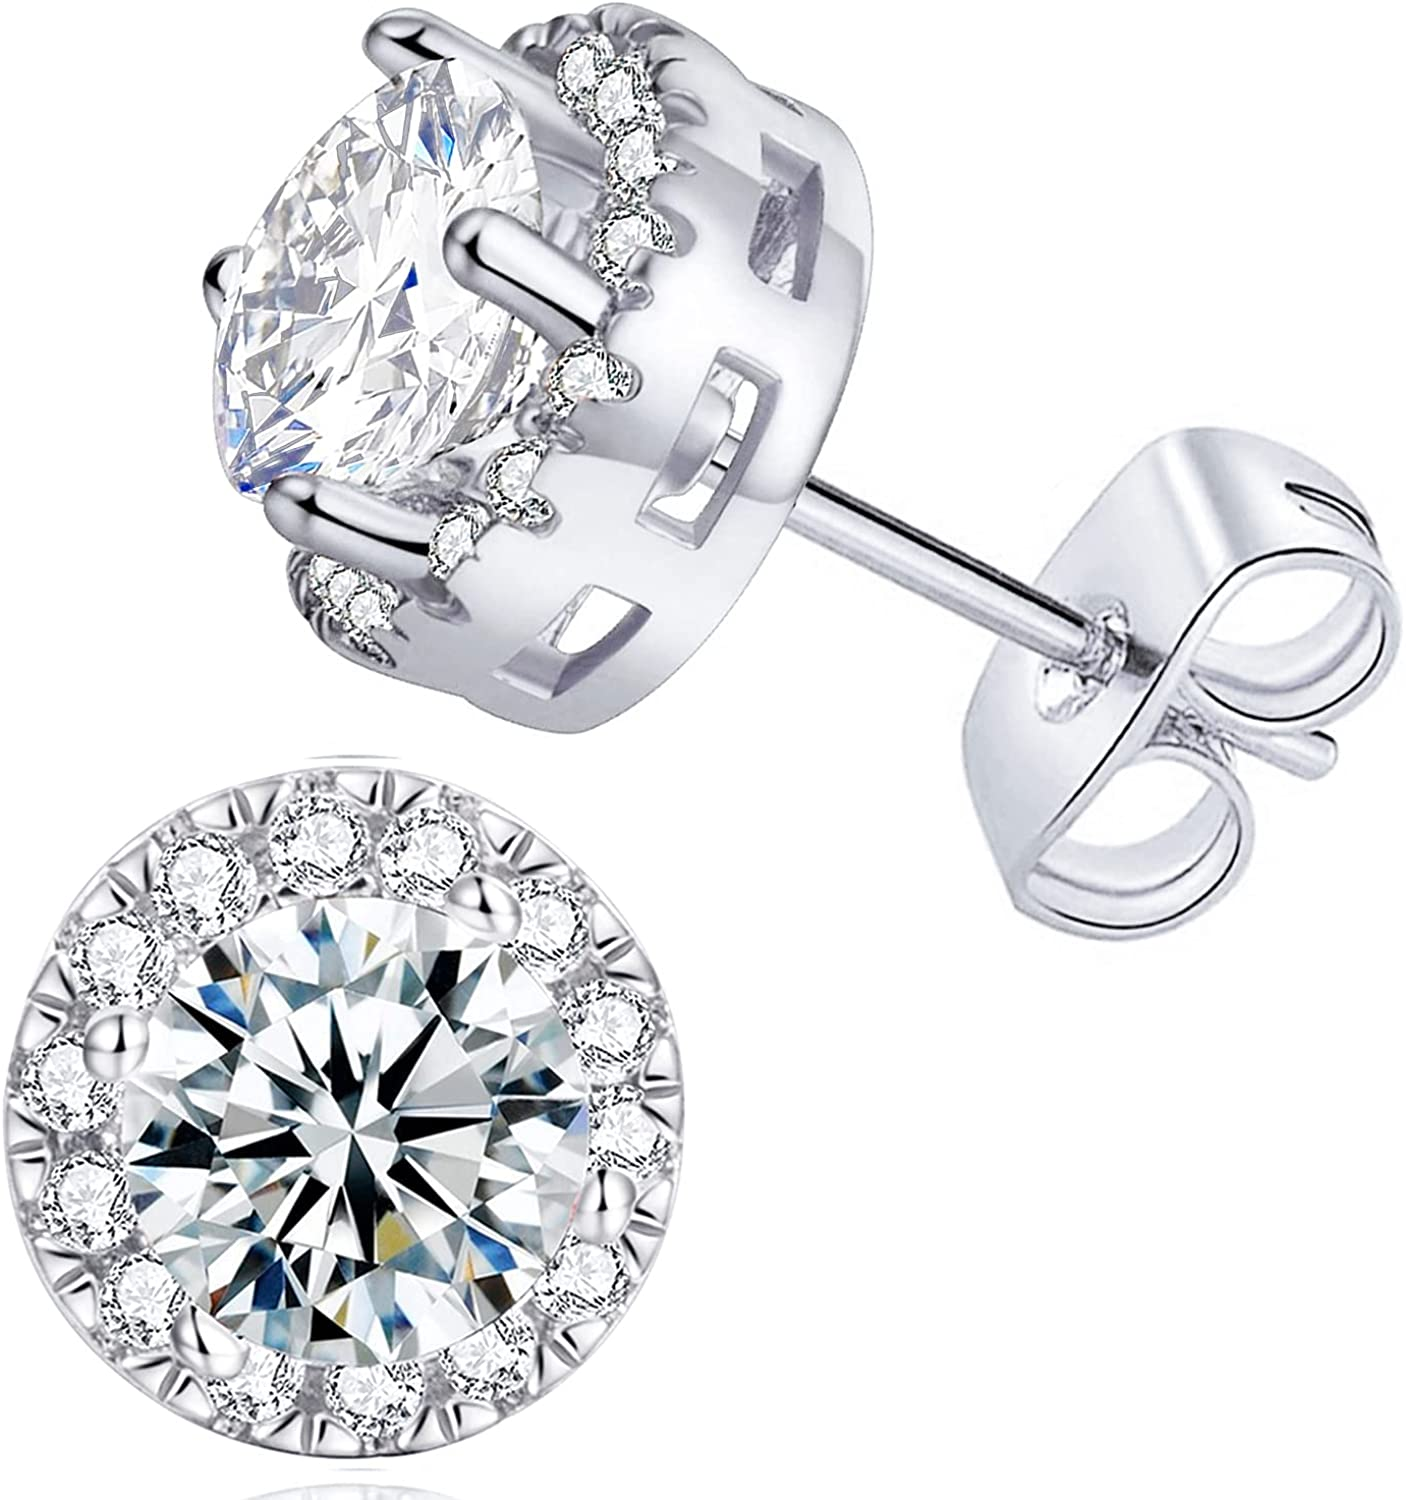 Halo Cubic Zirconia Earrings Hypoallergenic 14K White Gold Plated Stud for Women Men Simulated Diamond